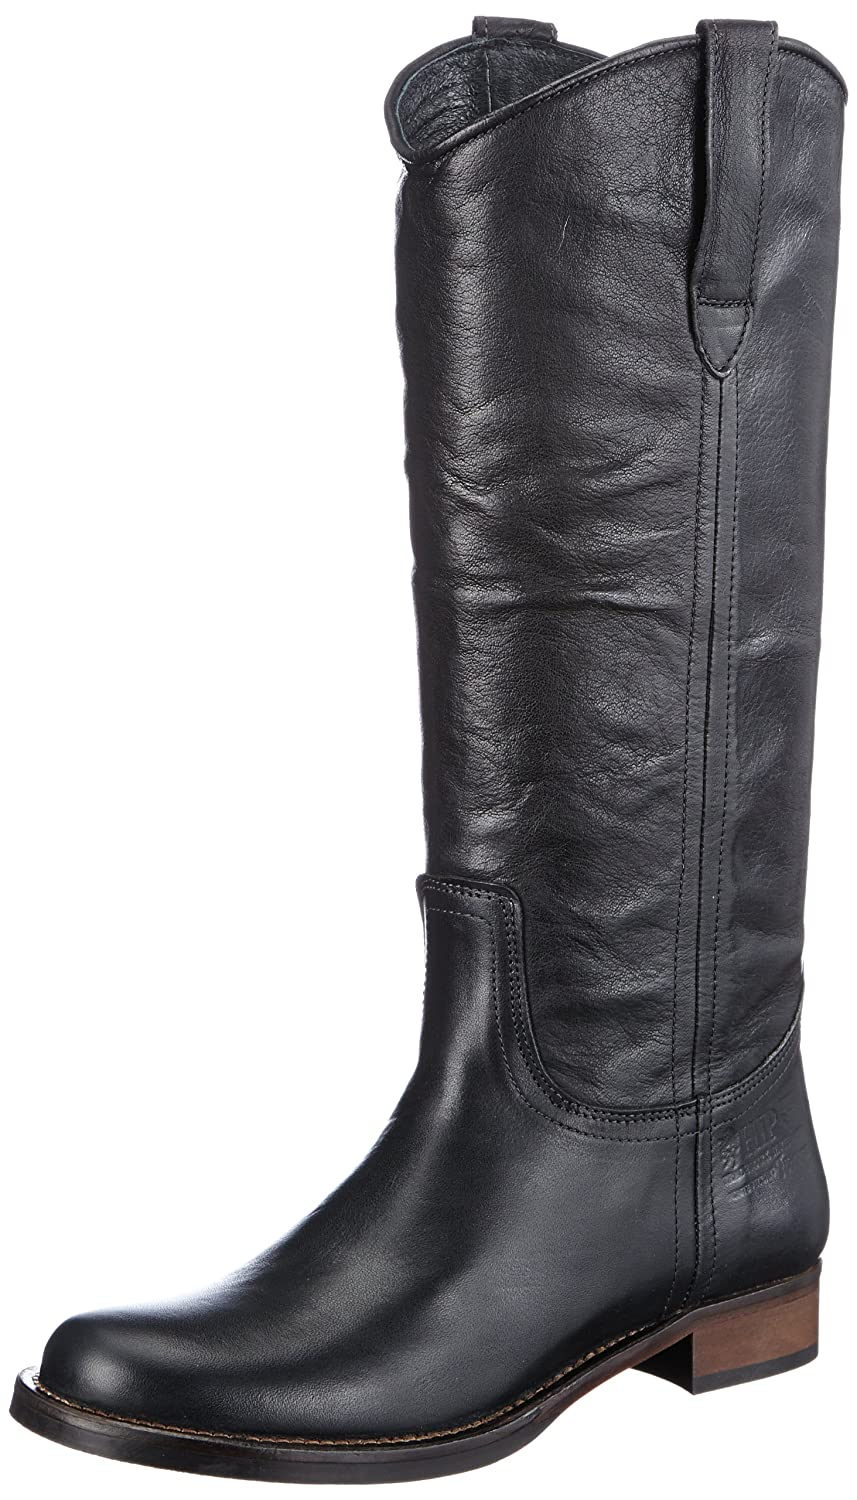 HIP Damen D1810 Black Leather Stiefel & Stiefeletten